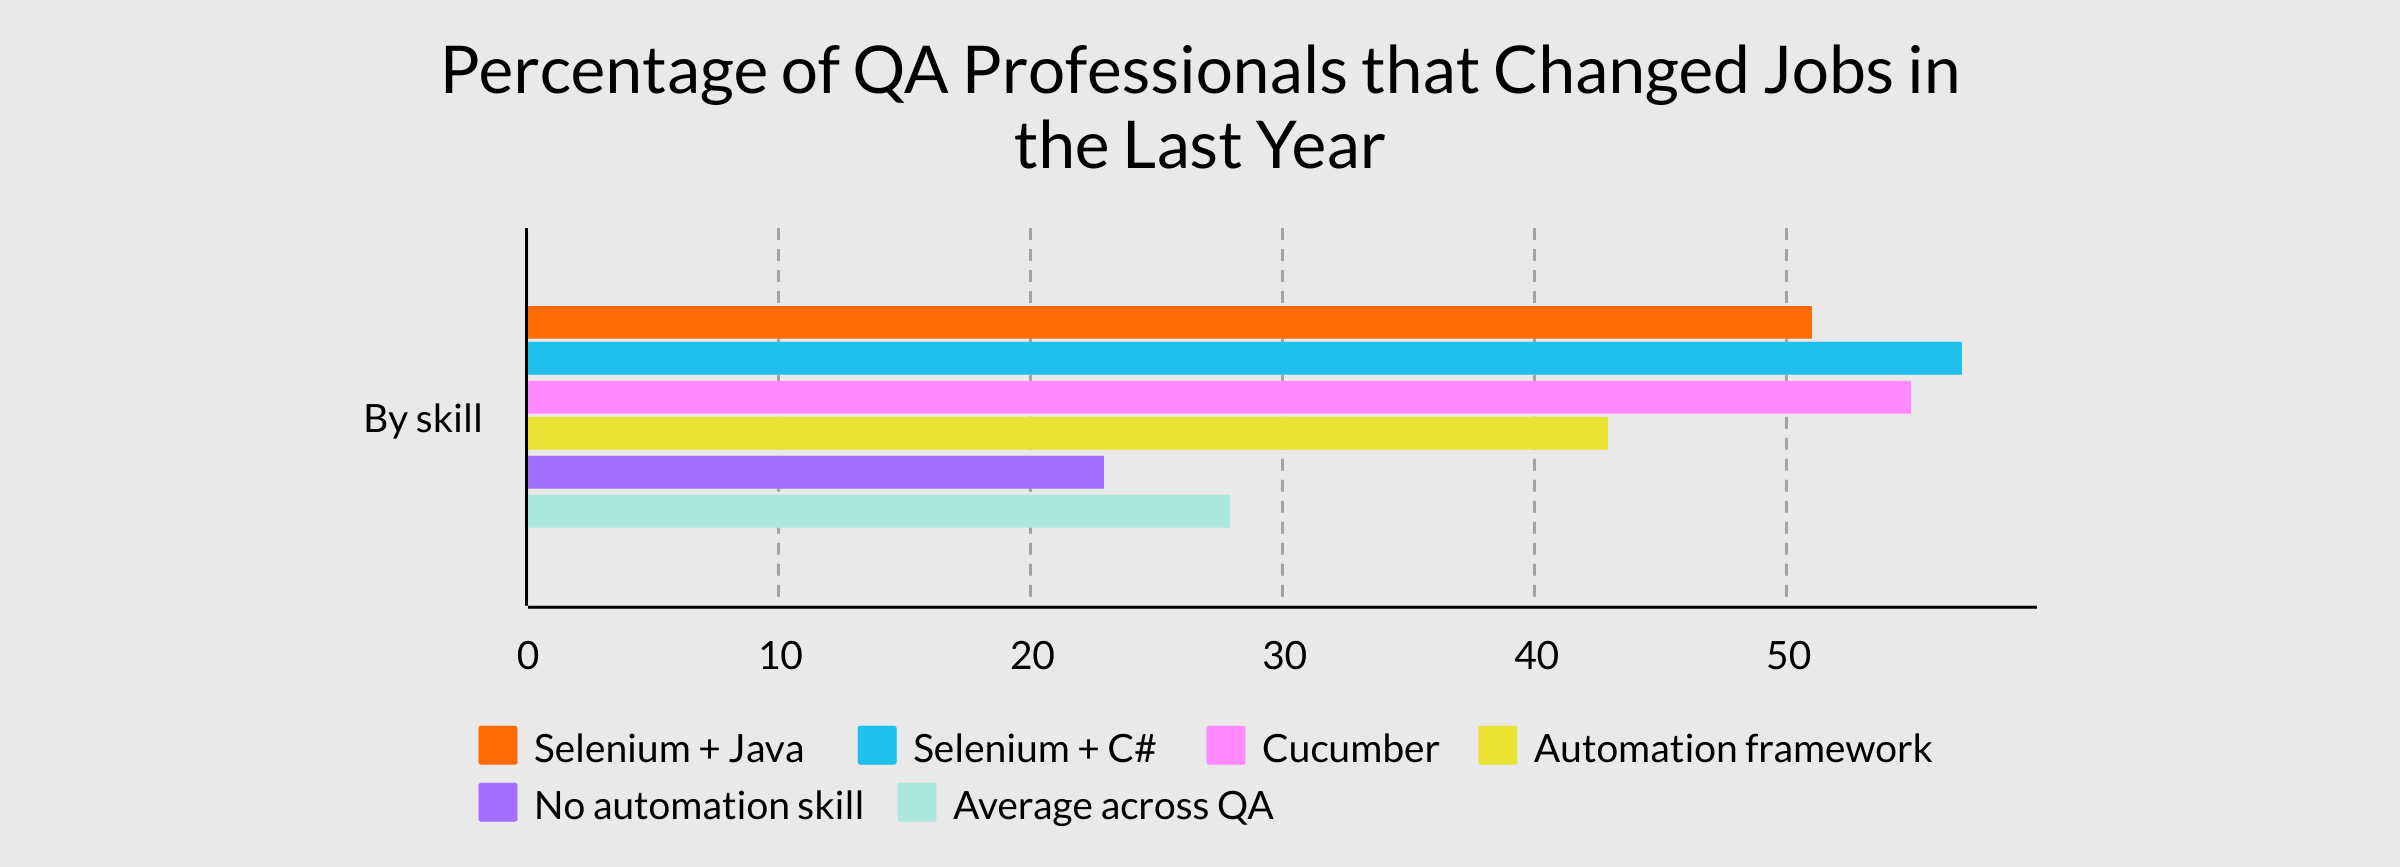 Graph showing percentage of QA professionals that changed jobs in the last year